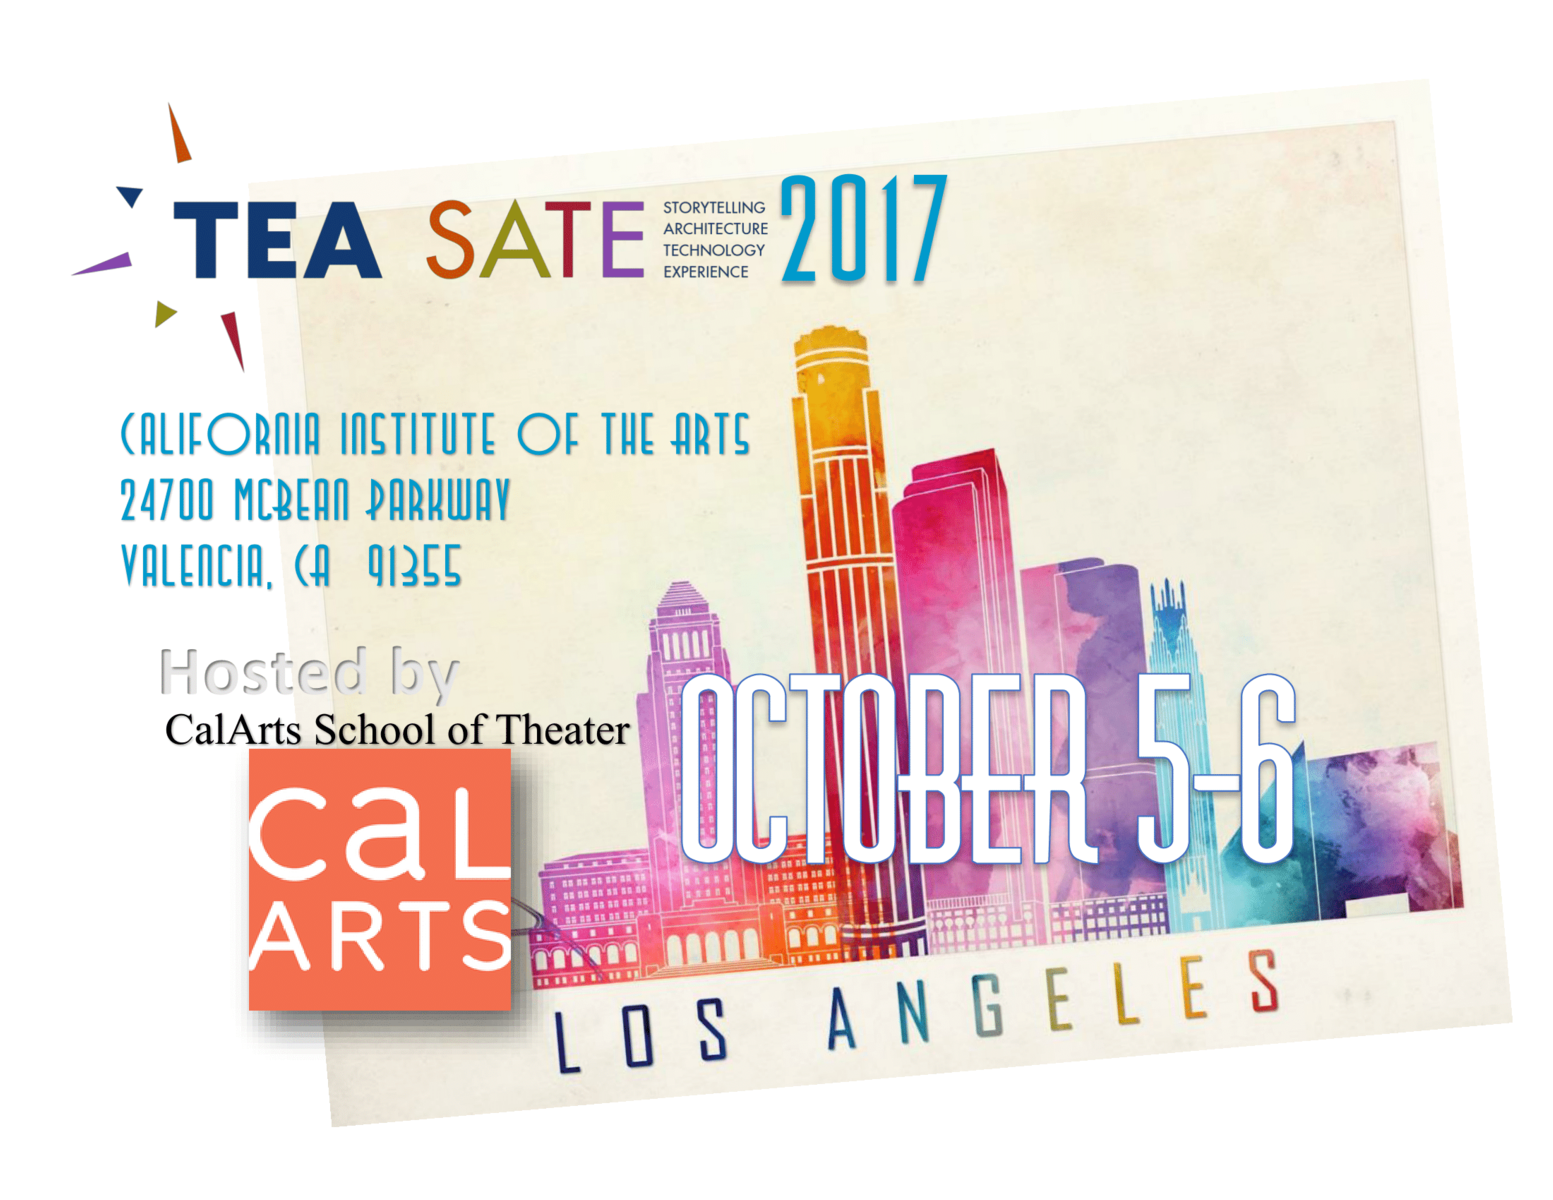 Schedule & Links: TEA SATE 2017 Los Angeles, Oct 5-6 at CalArts